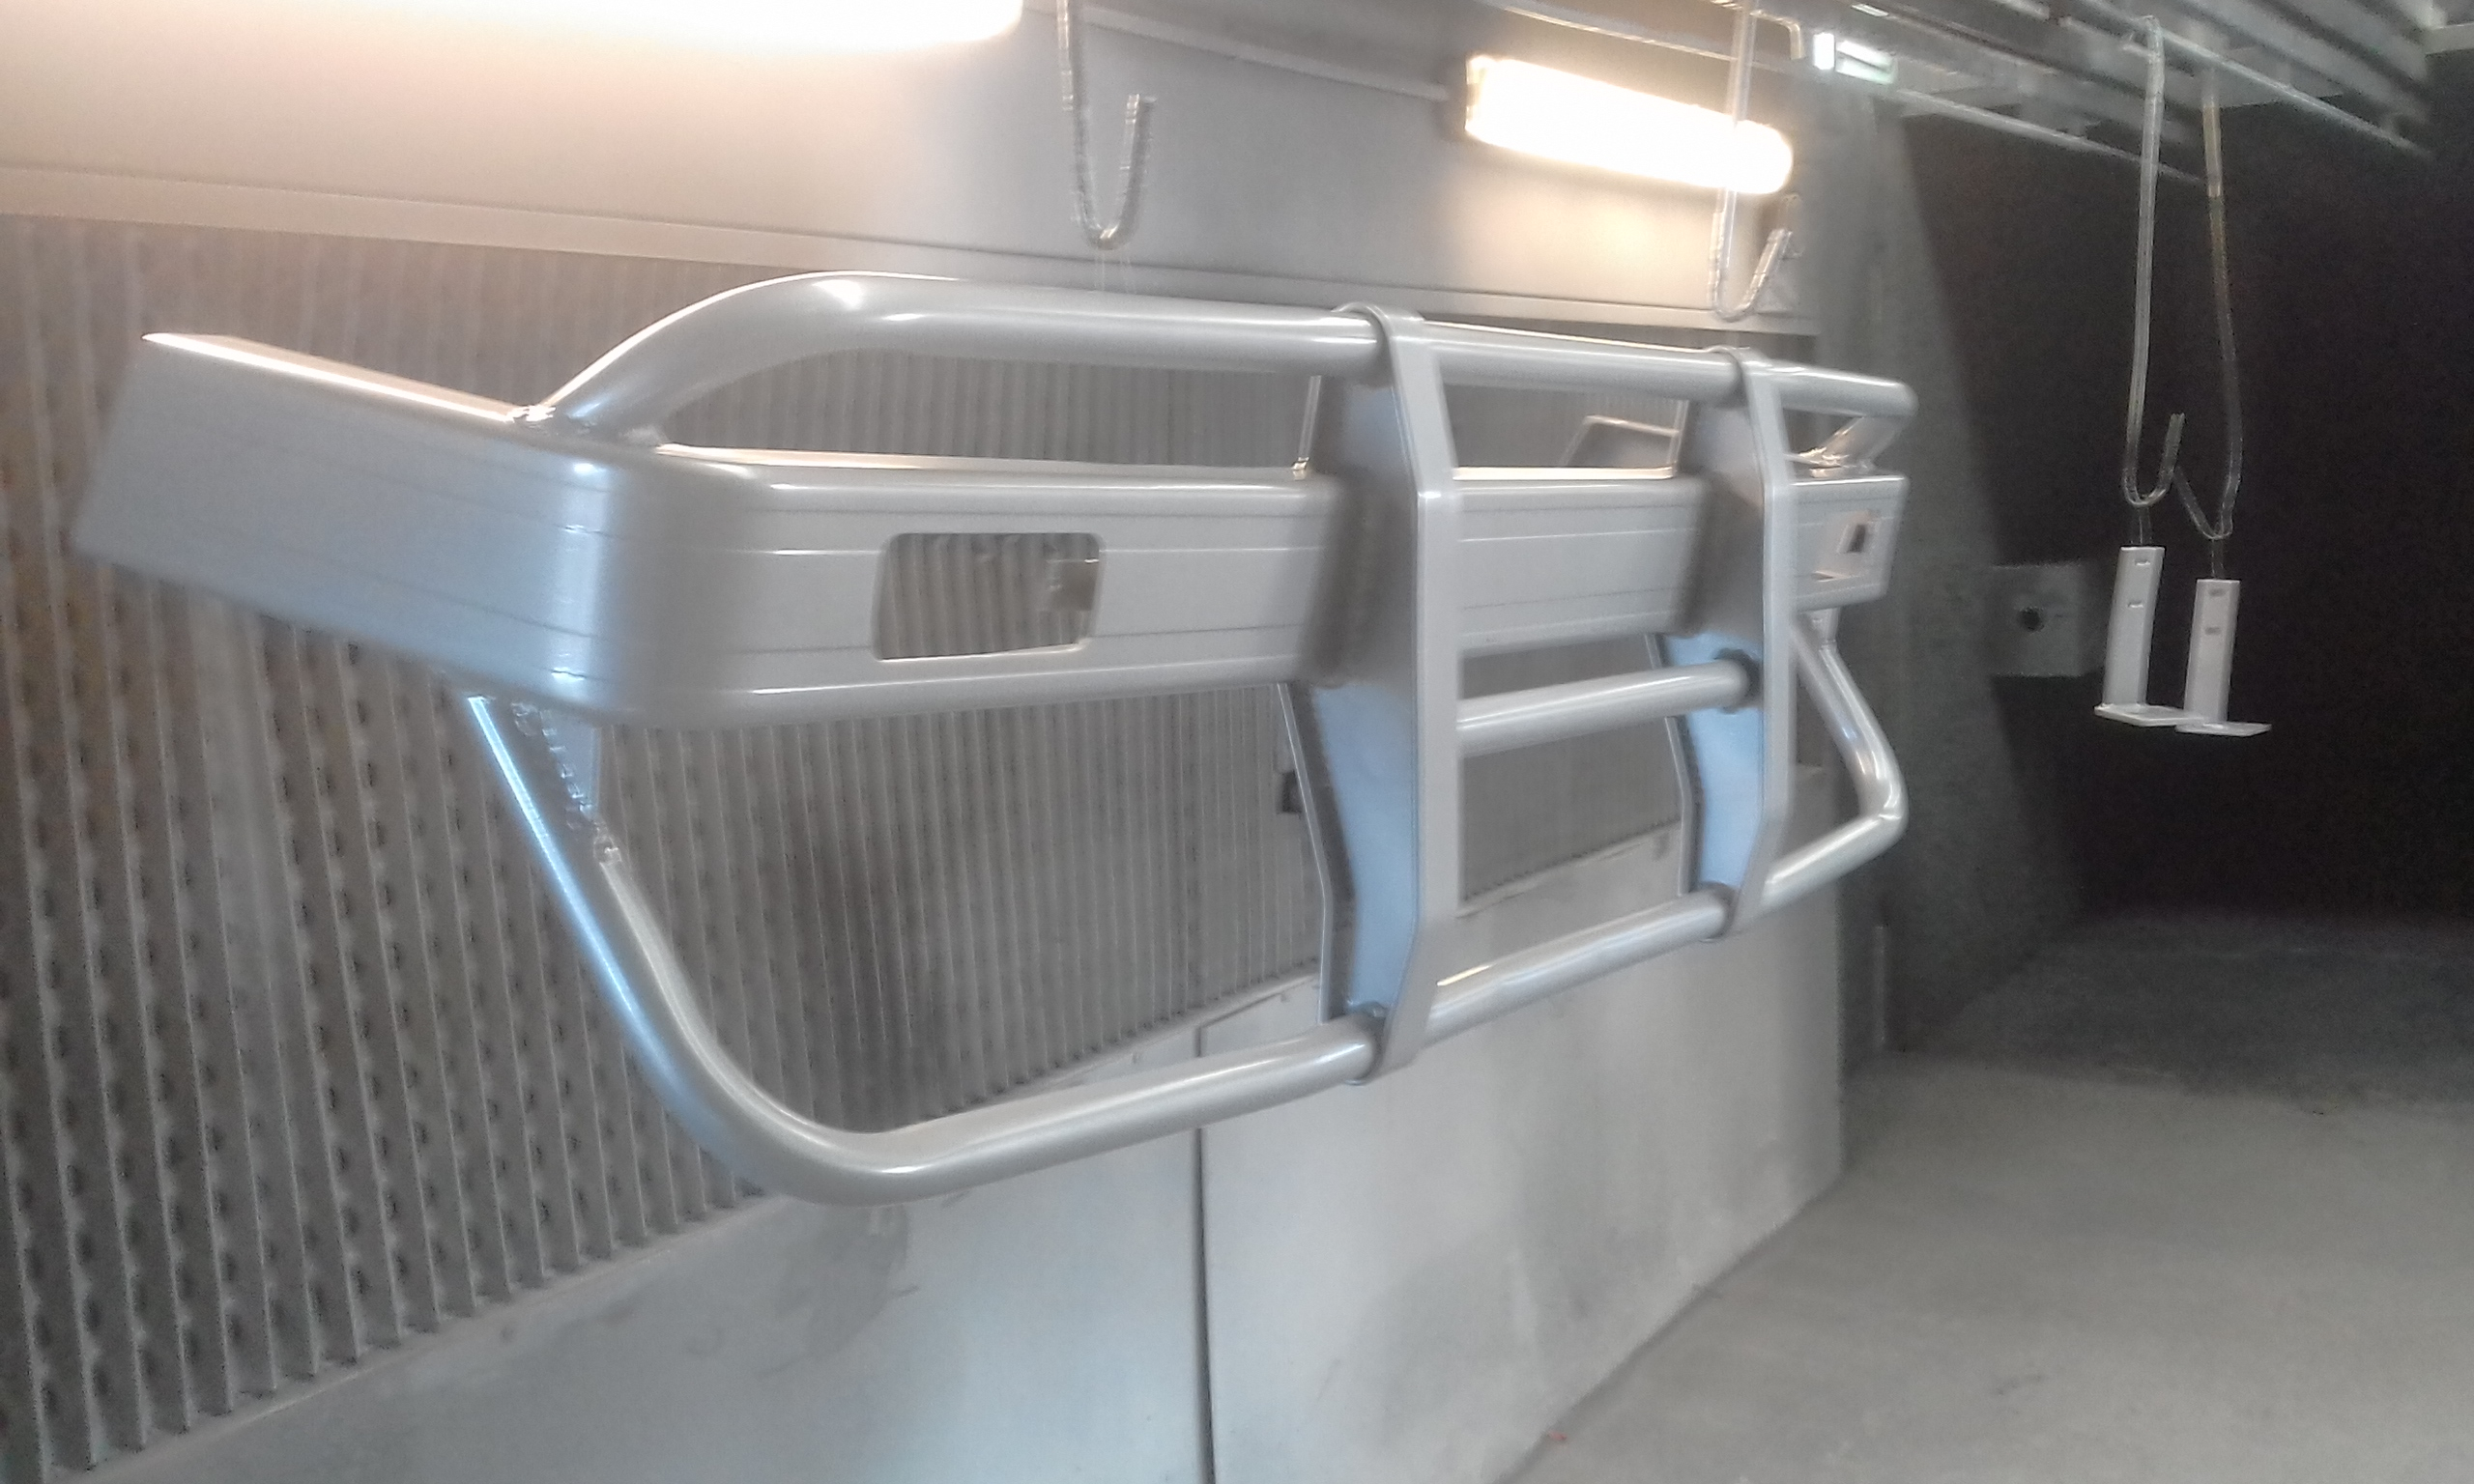 Powder coating - Oxytech silver pearl - Bull bar